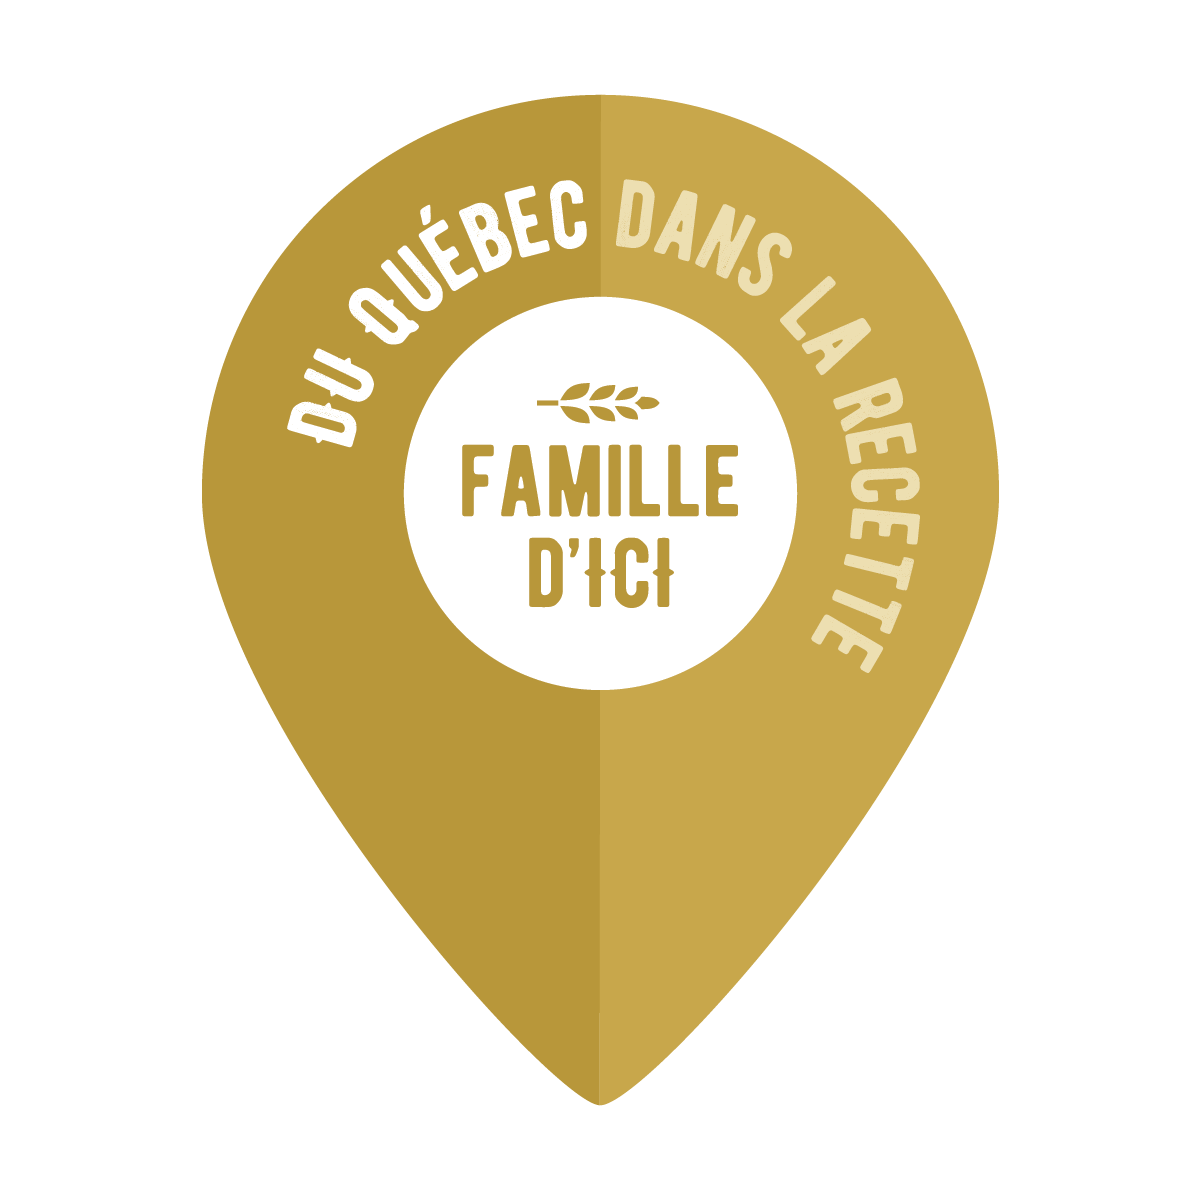 Famille d'ici